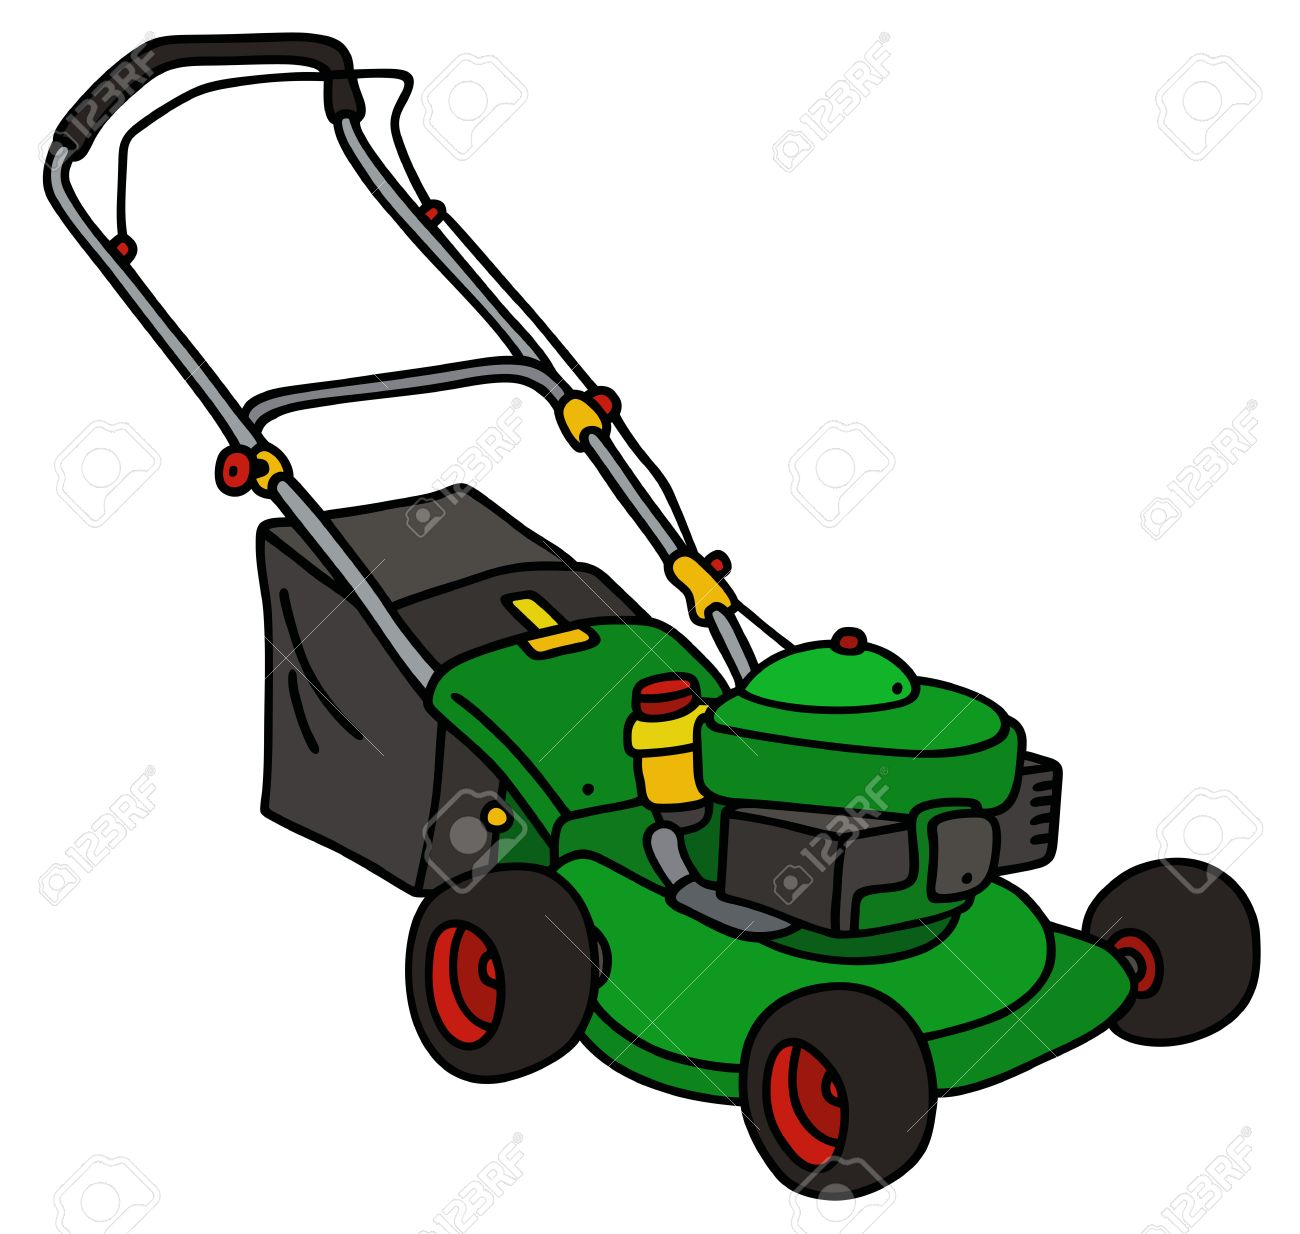 Clipart lawn mower 5 » Clipart Station.